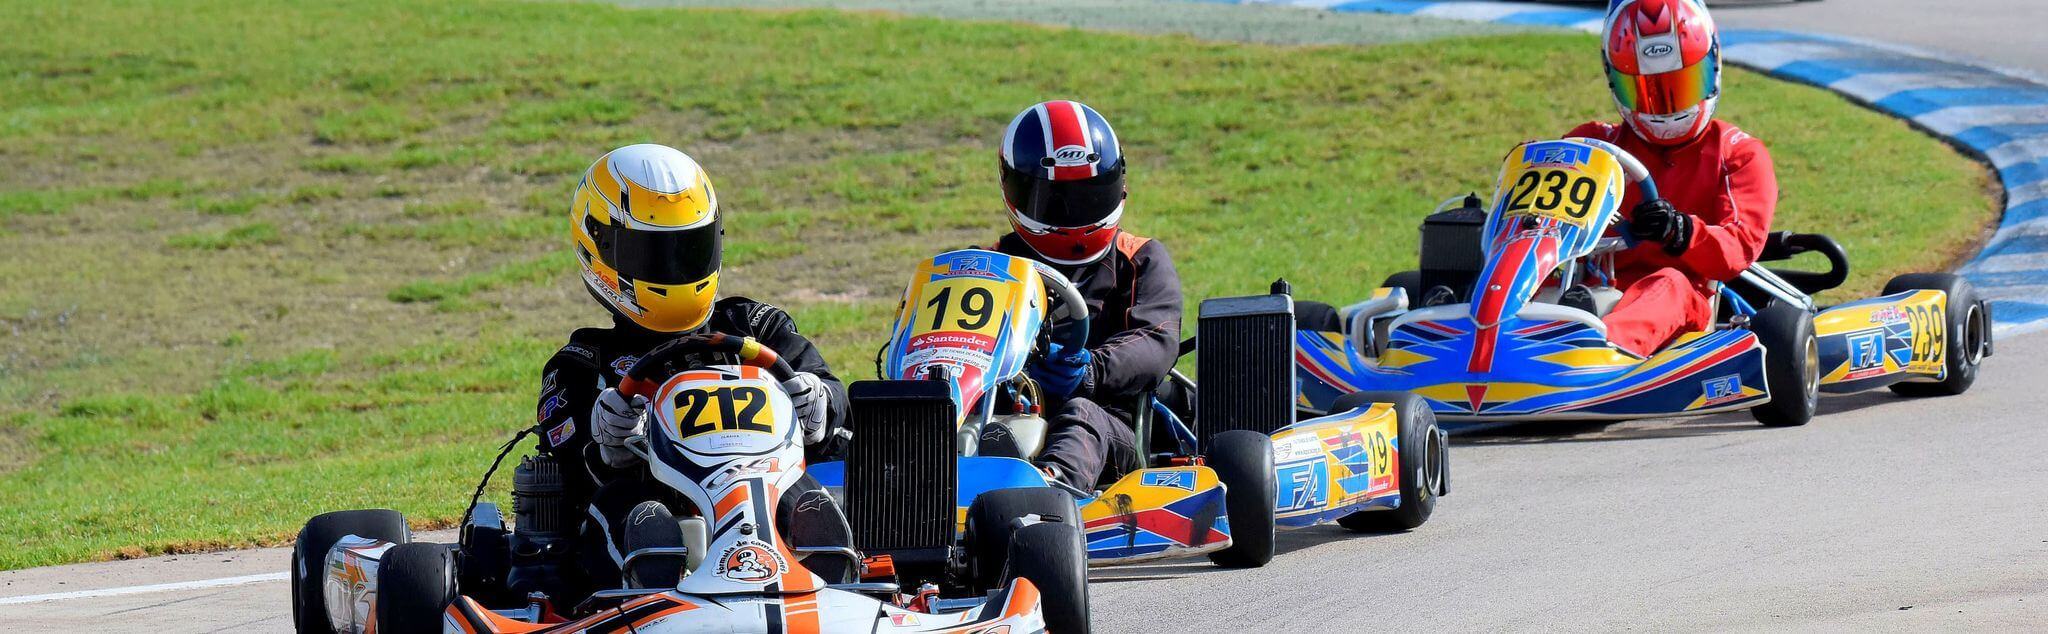 Karting in North Yorkshire